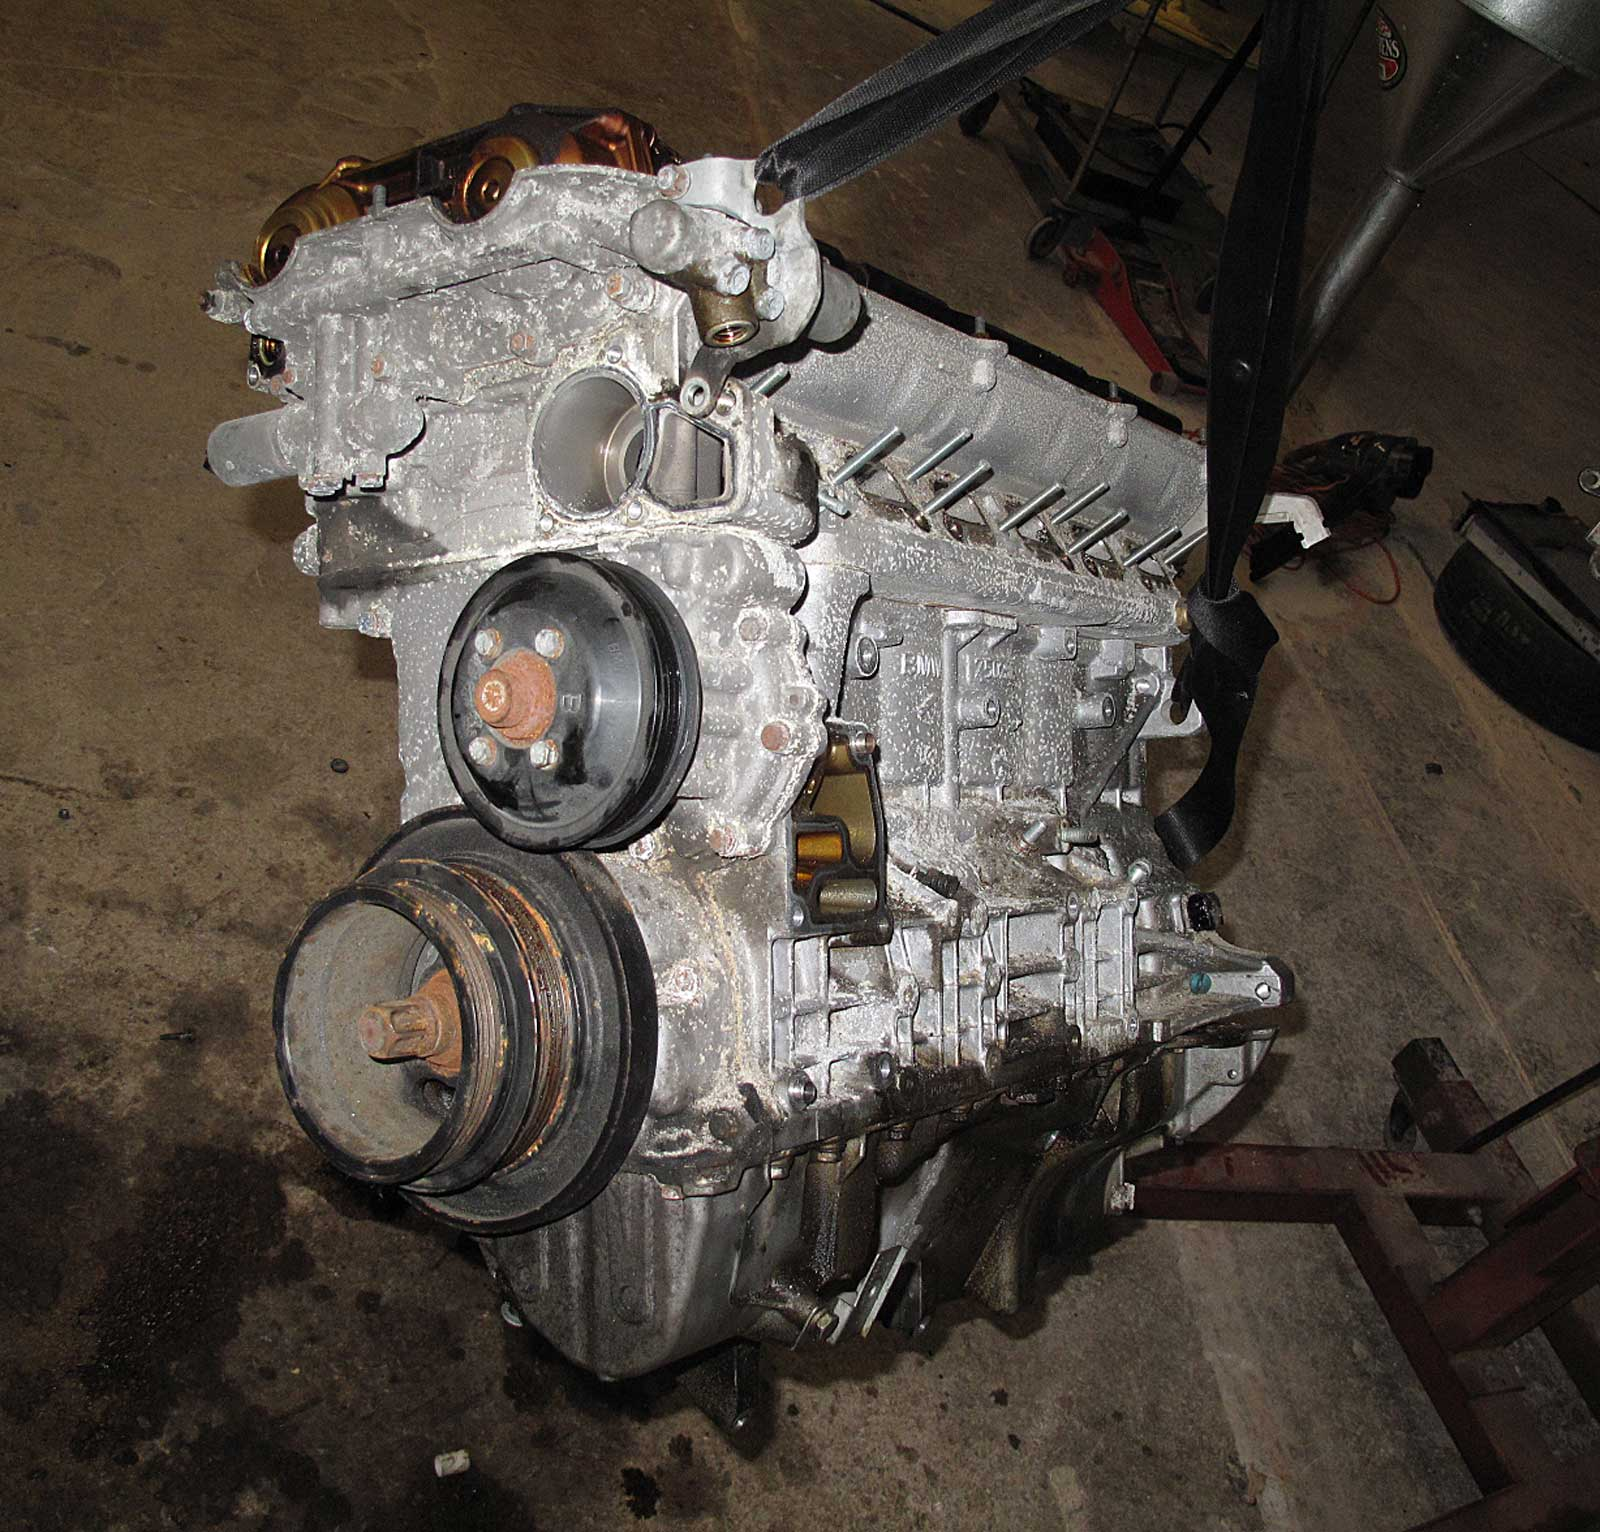 bmw e46 325xi x3 2.5l m54 6-cylinder longblock engine ... 97 millenia 2 5 engine diagram bmw 325xi 2 5 engine diagram